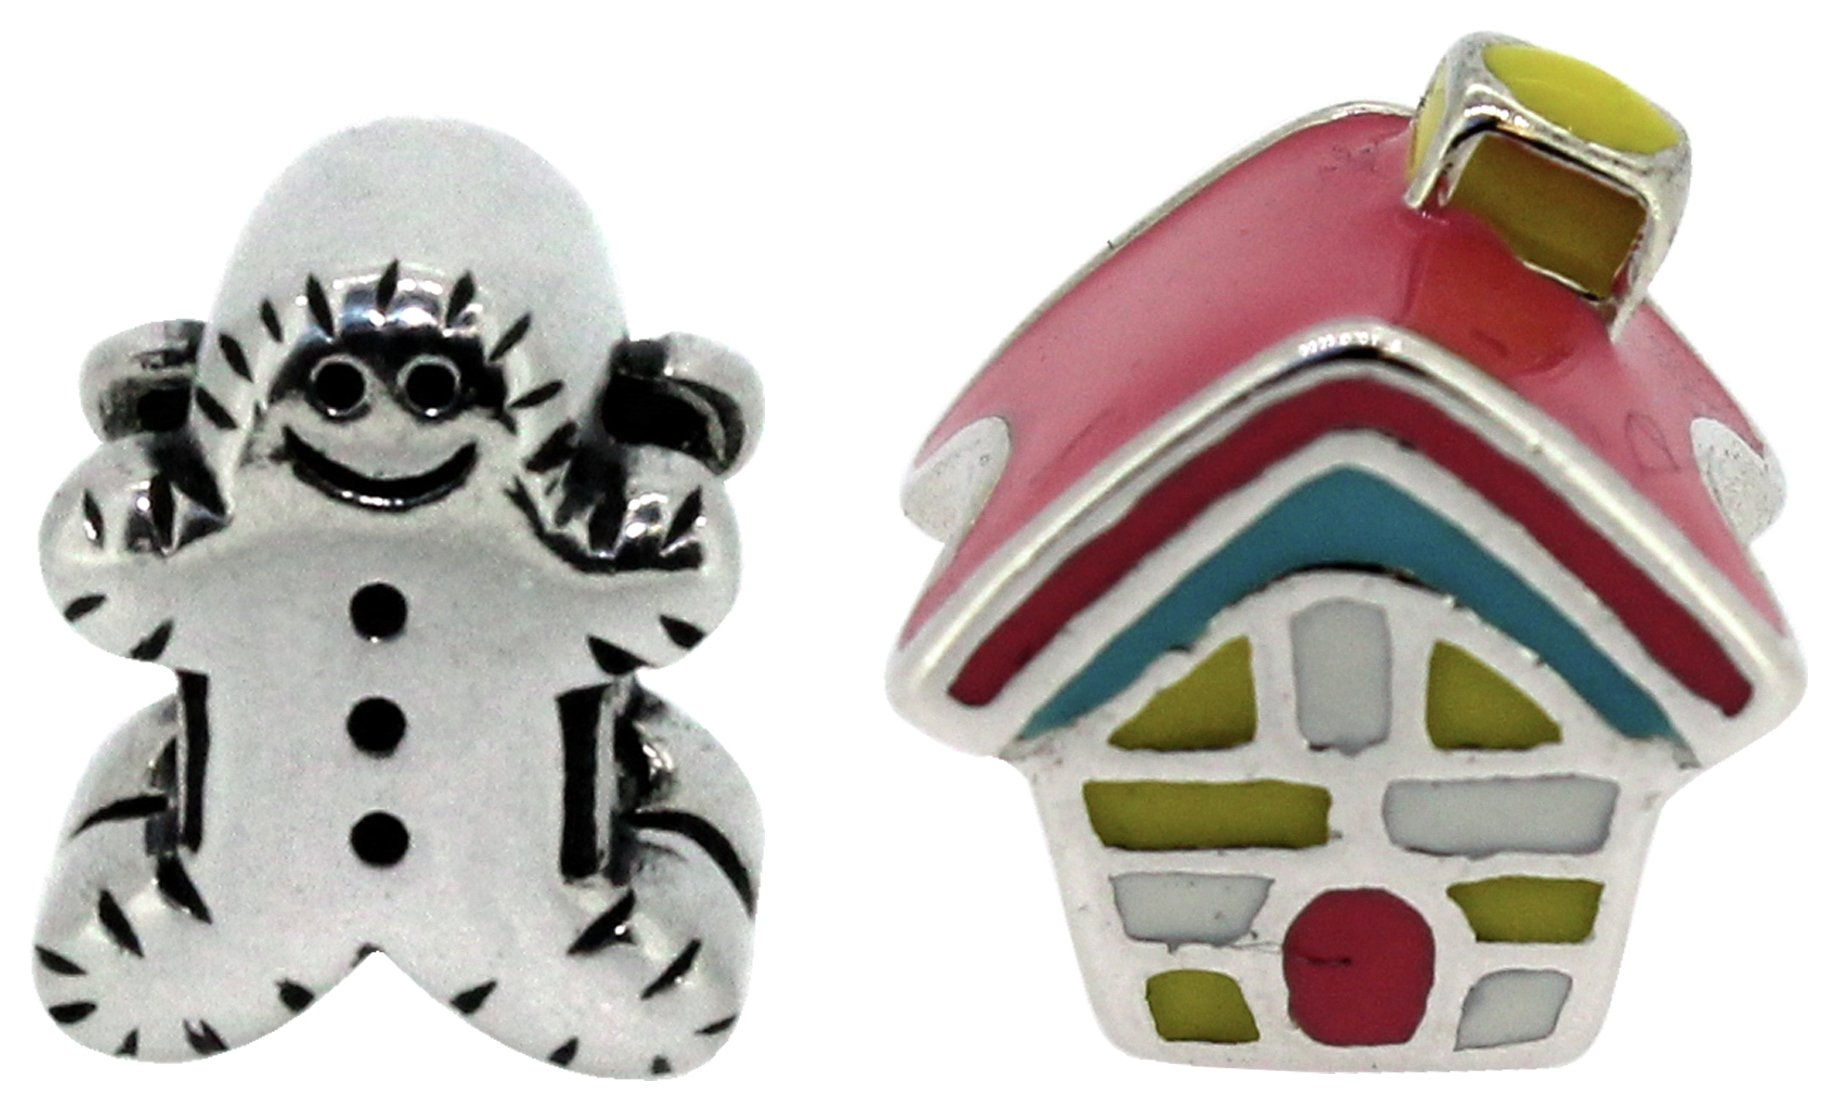 Miss Glitter S.Silver Kids Gingerbread Man and House Charms.